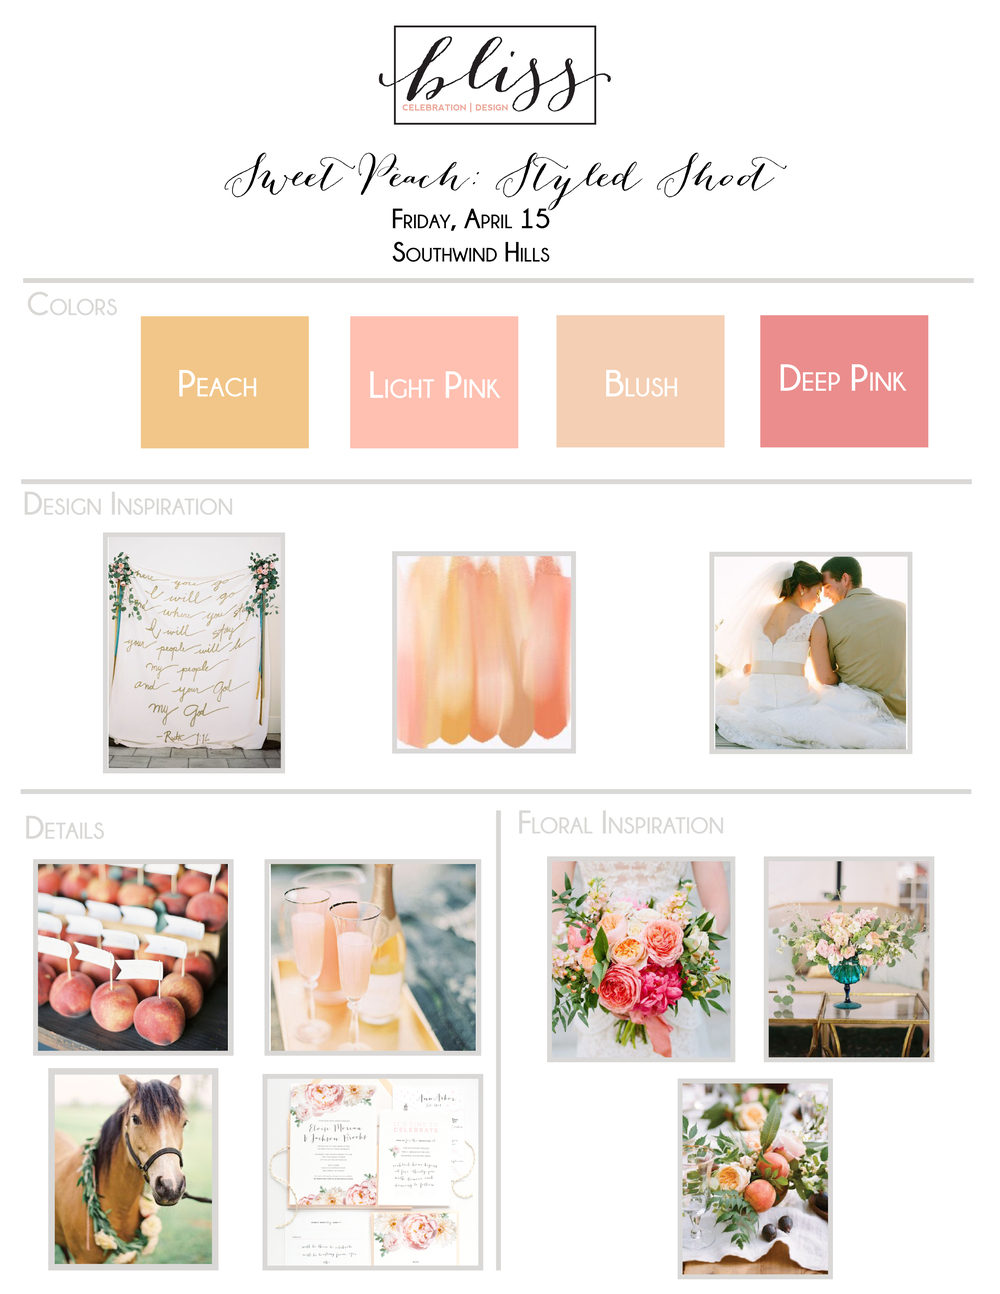 Sweet Peach Styled Shoot Inspiration Board | Bliss Celebration + Designs | Melanie Foster Photography